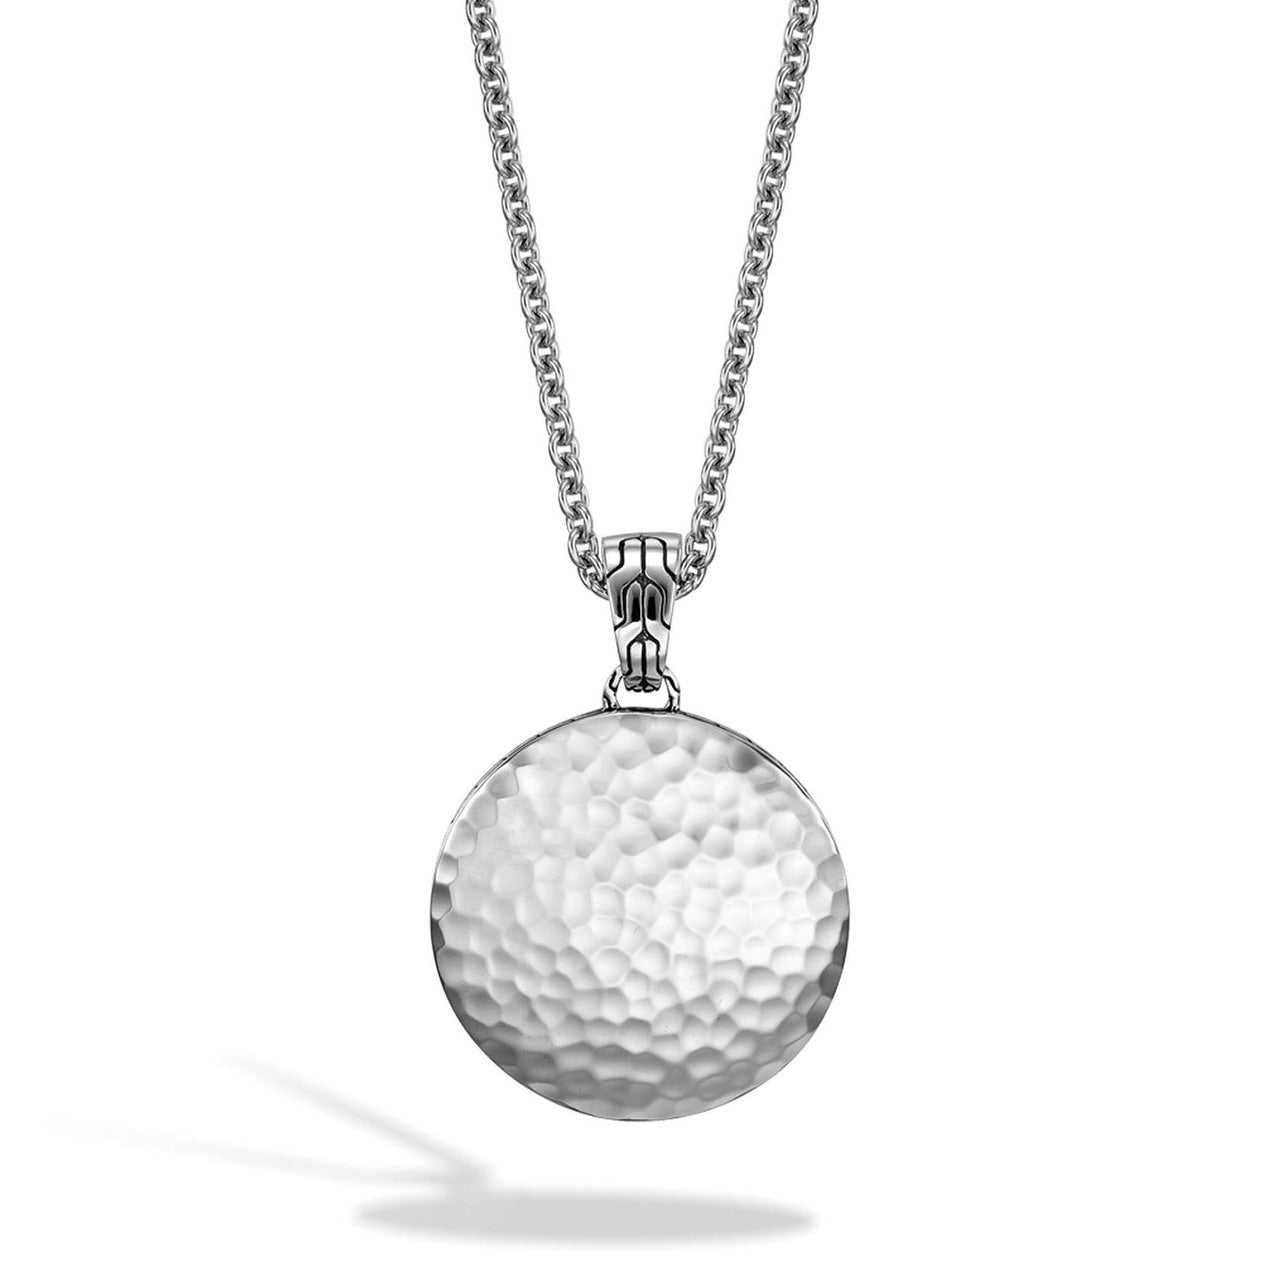 John Hardy Dot Medium Round Pendant in Sterling Silver with Palu Hand Hammering